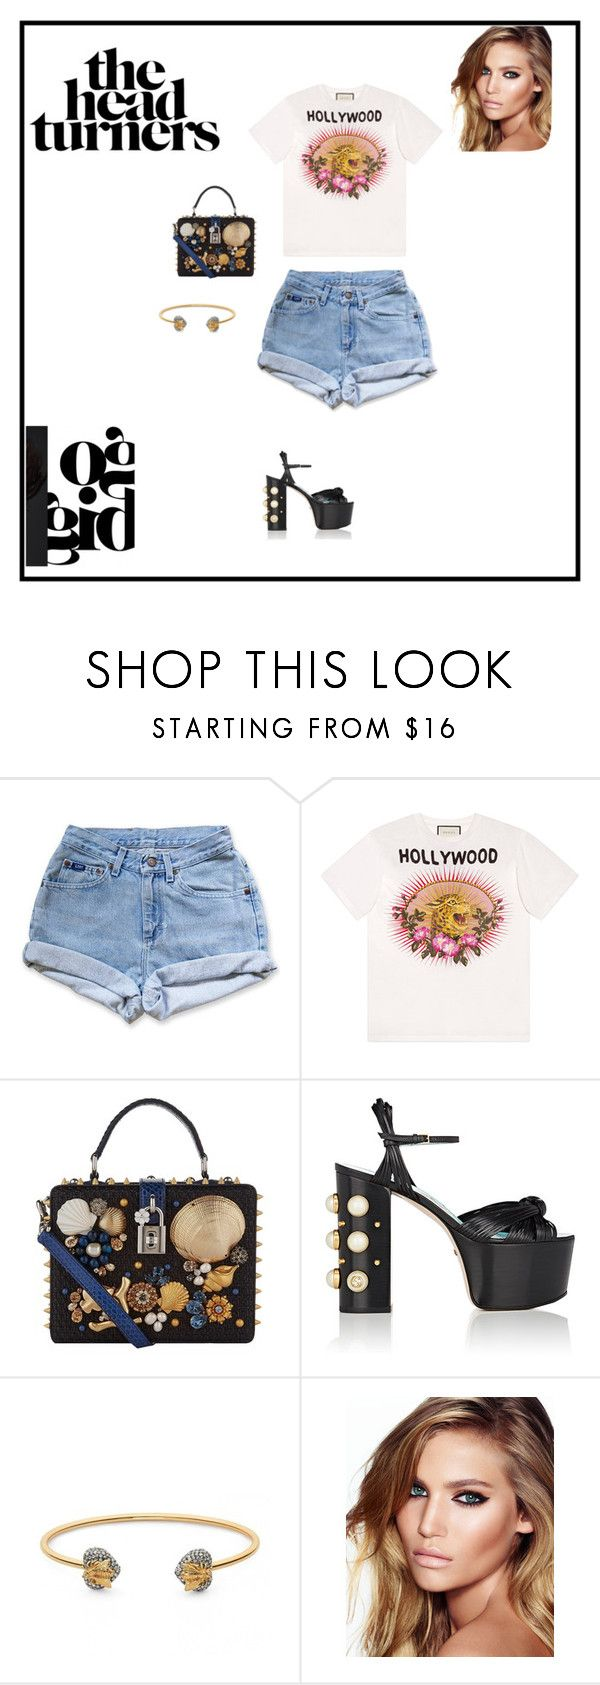 """""""Untitled #49"""" by sb187 ❤ liked on Polyvore featuring Levi's, Gucci, Dolce&Gabbana and Charlotte Tilbury"""